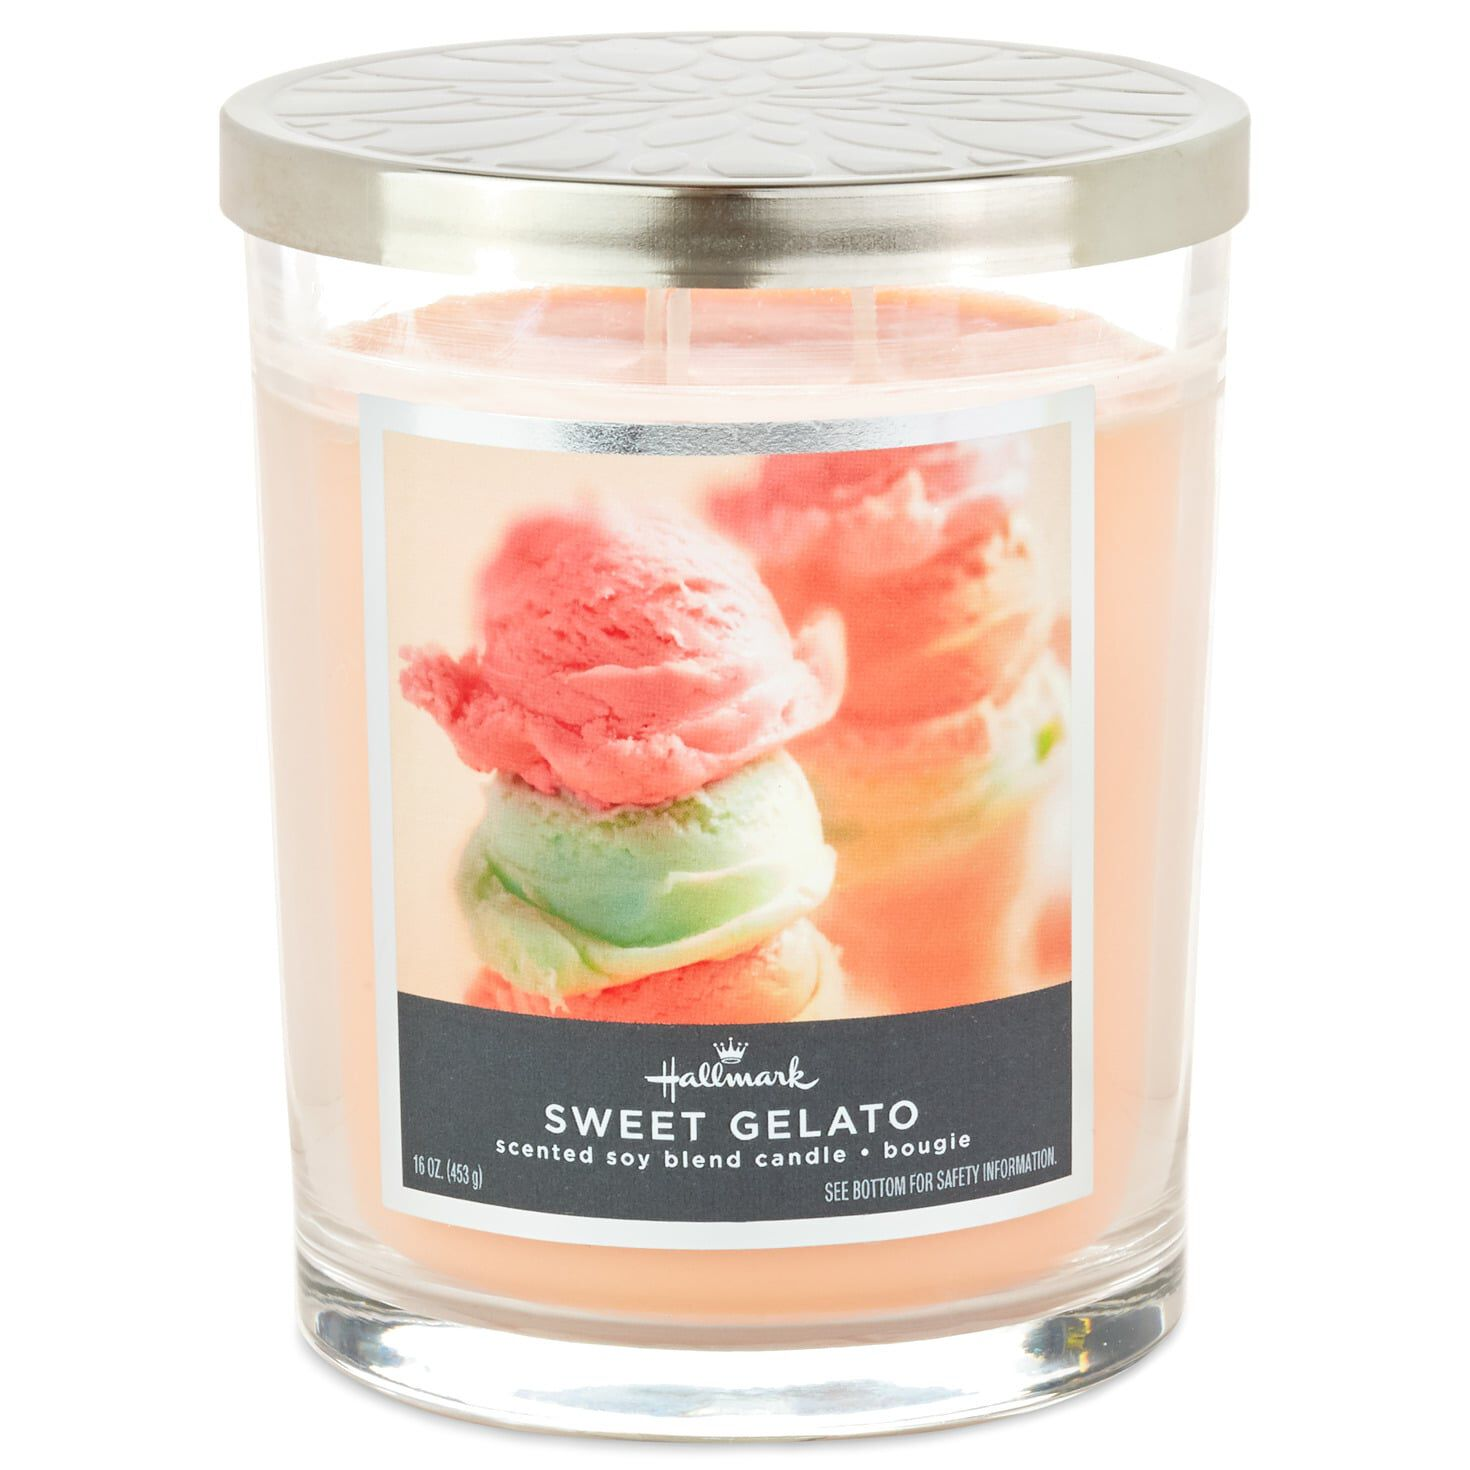 Balsam Fir 16 Oz Jar Candle Made in the USA Old Candle Barn 011 Blow out The Light And Turn On The Candles